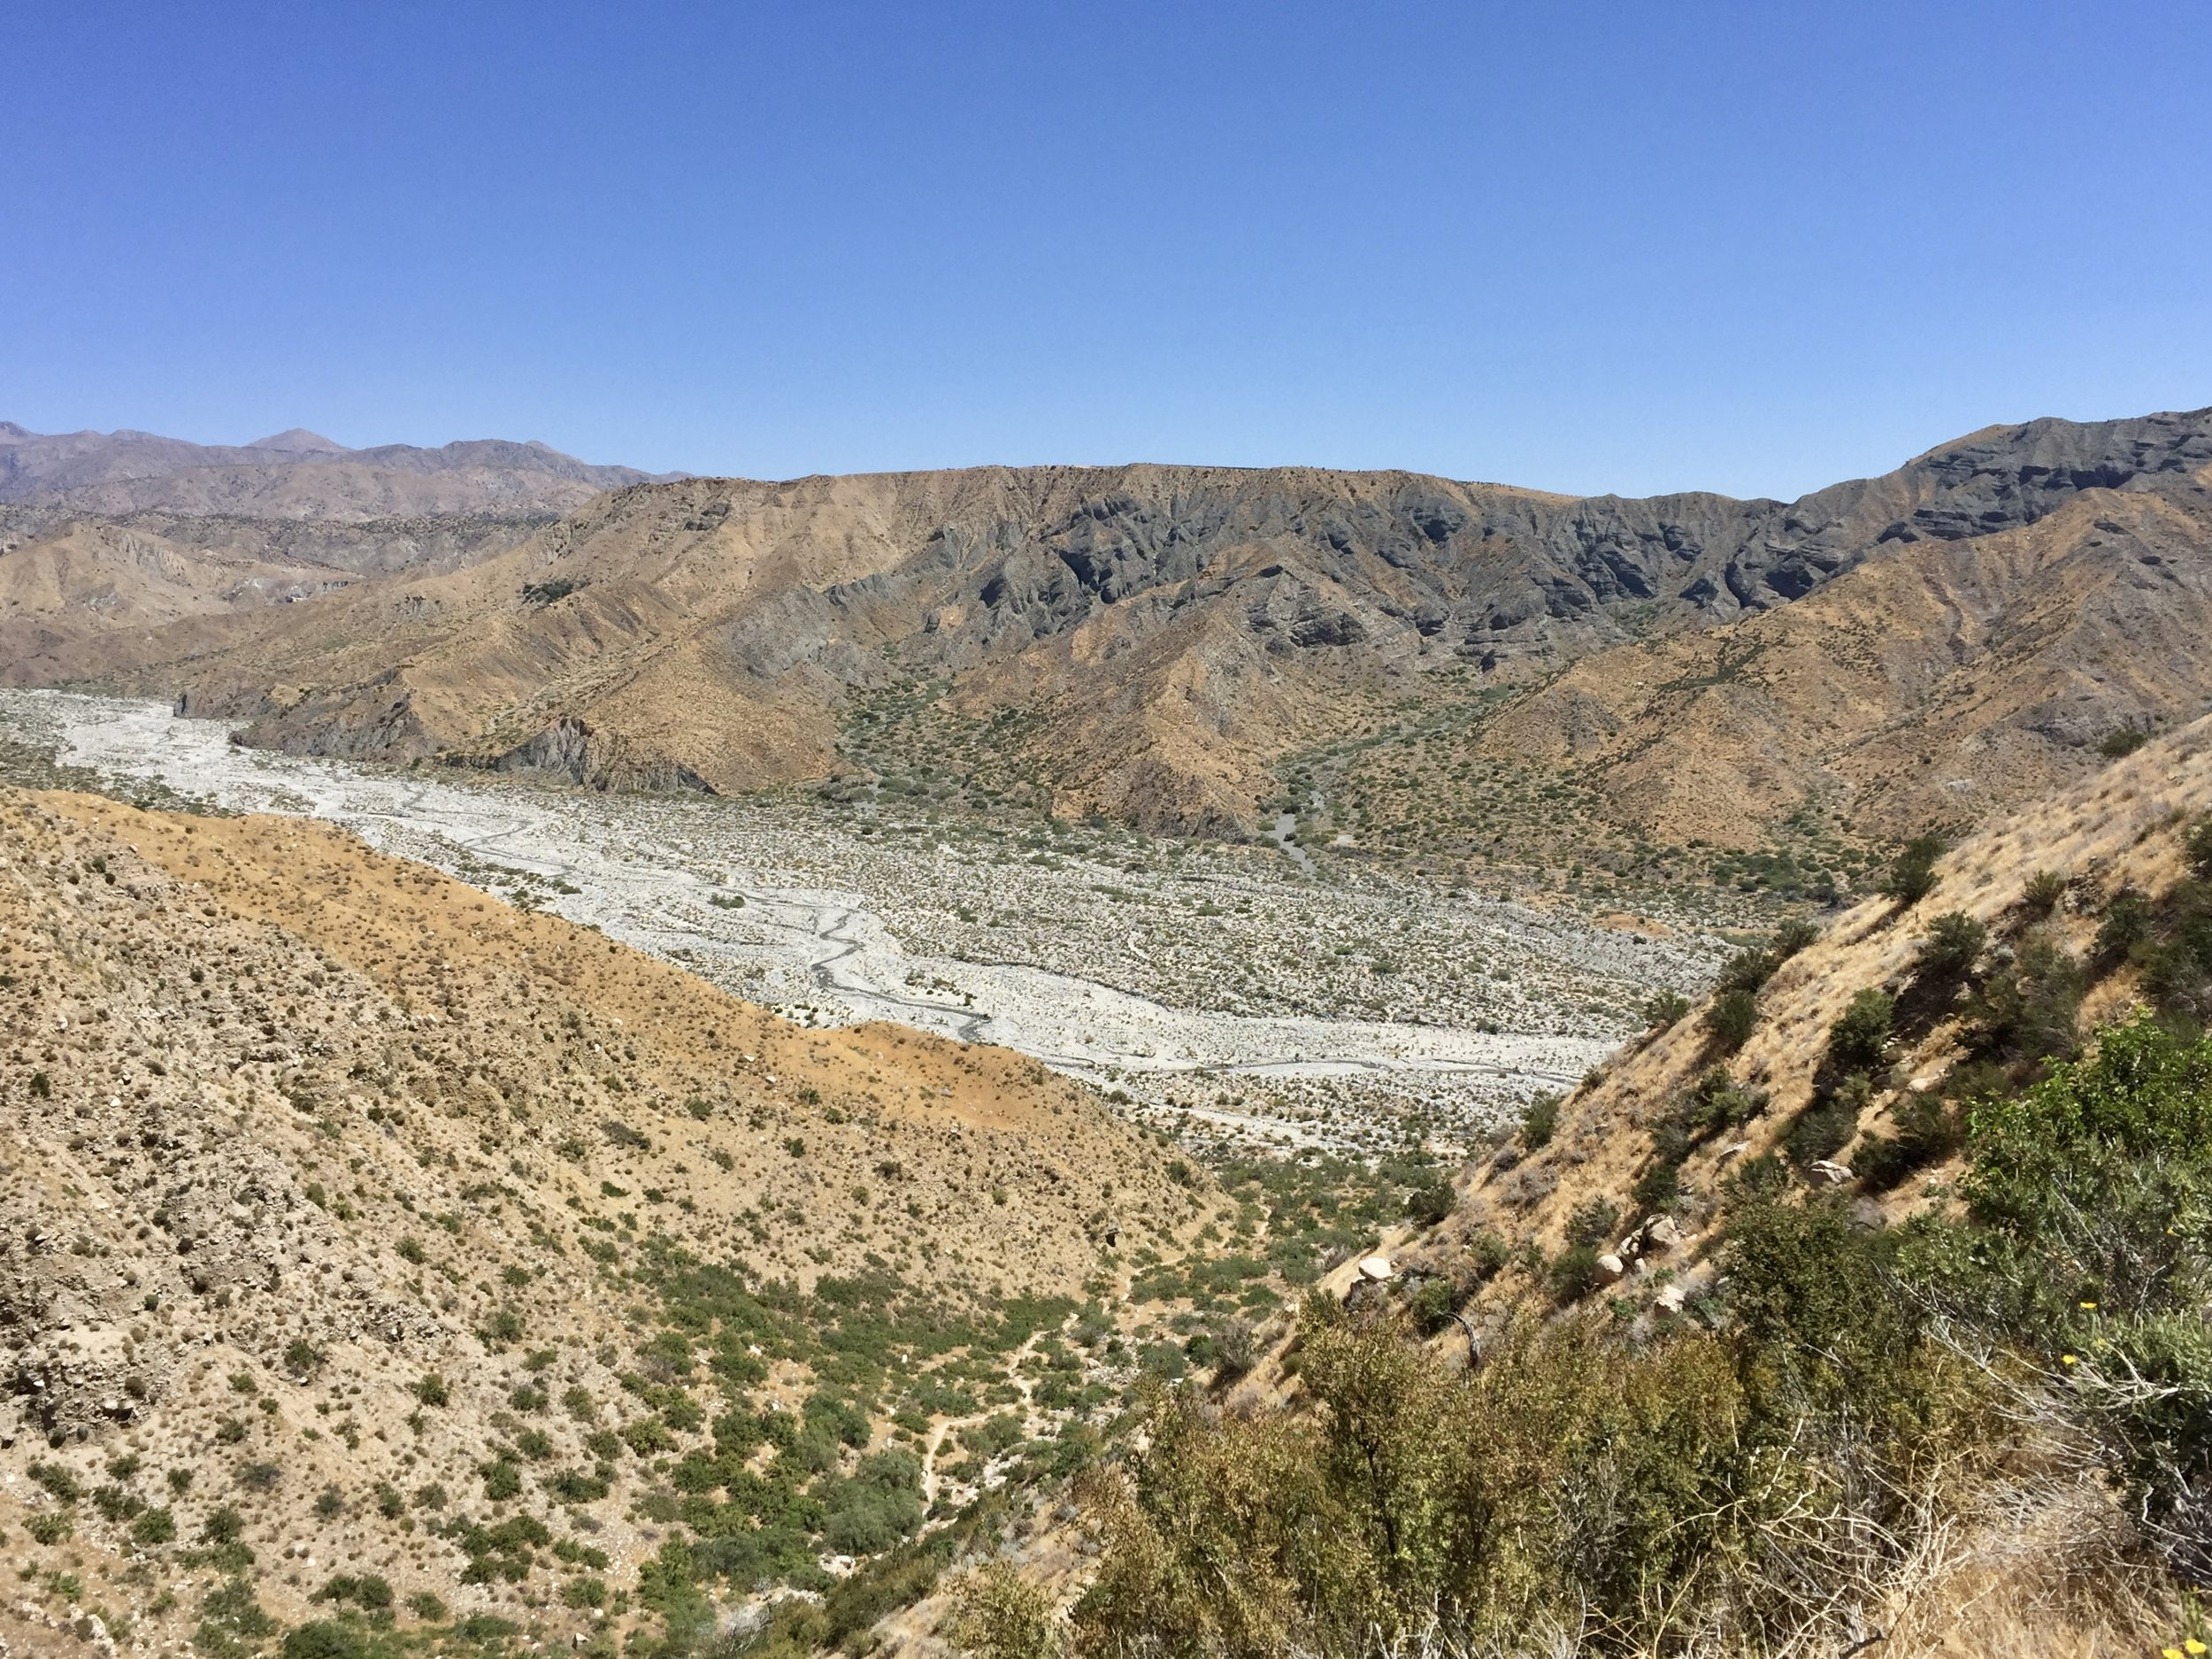 Looking down towards beautiful Whitewater preserve.